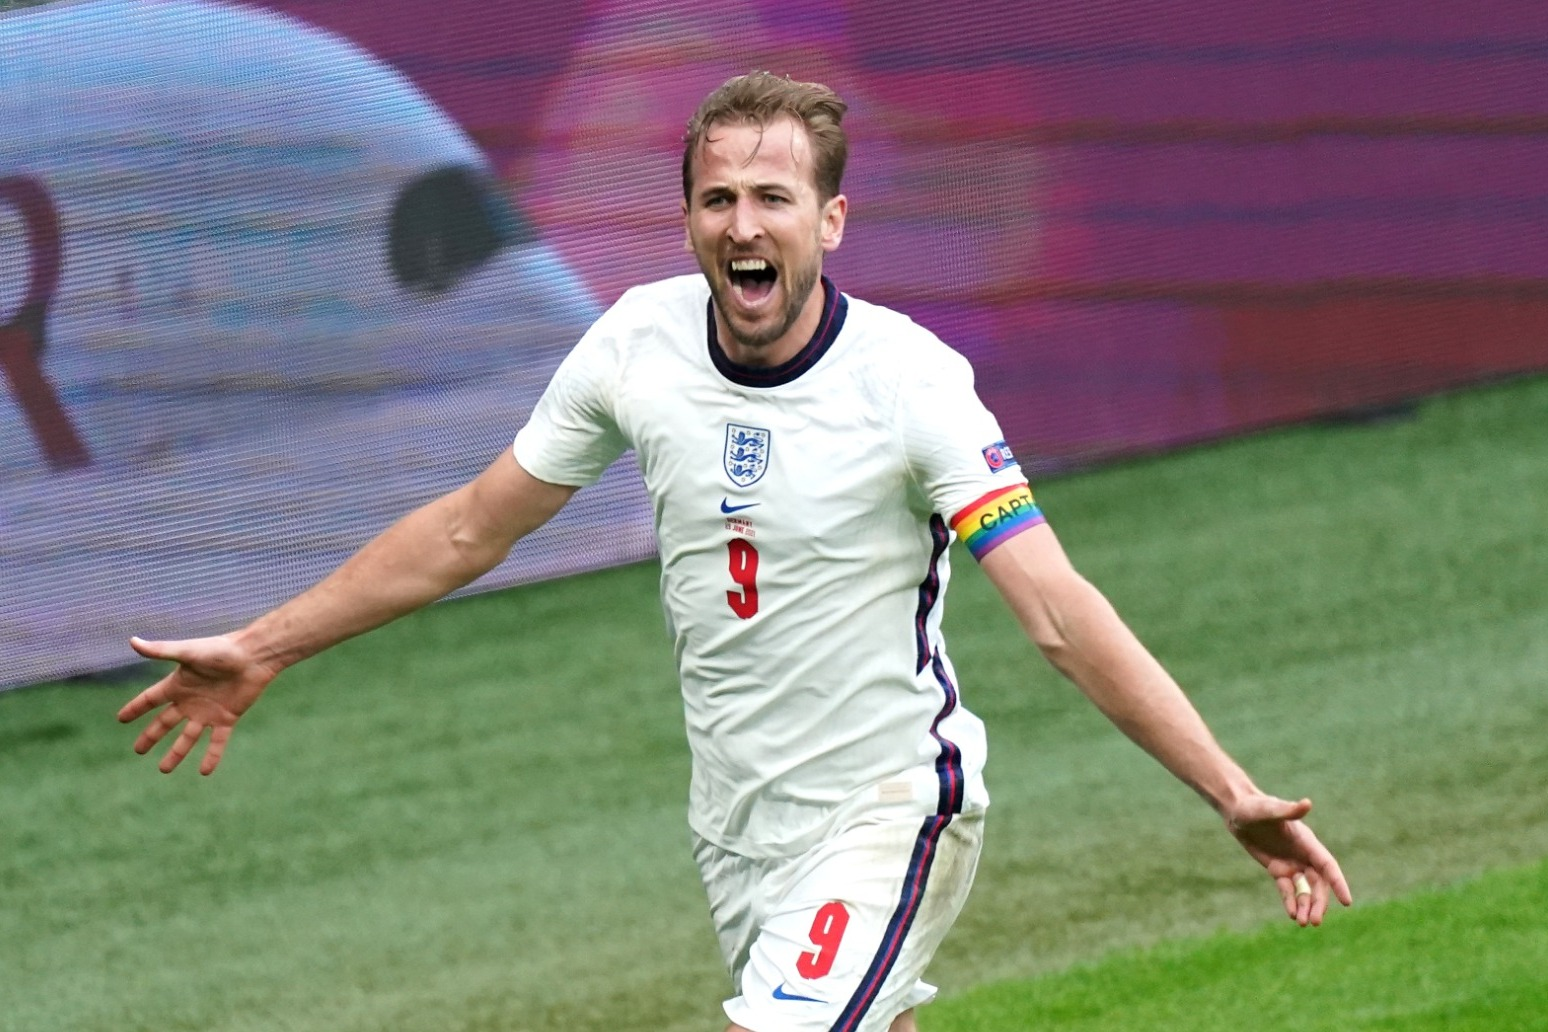 Harry Kane on target as England beat Germany to reach Euro 2020 quarter-finals